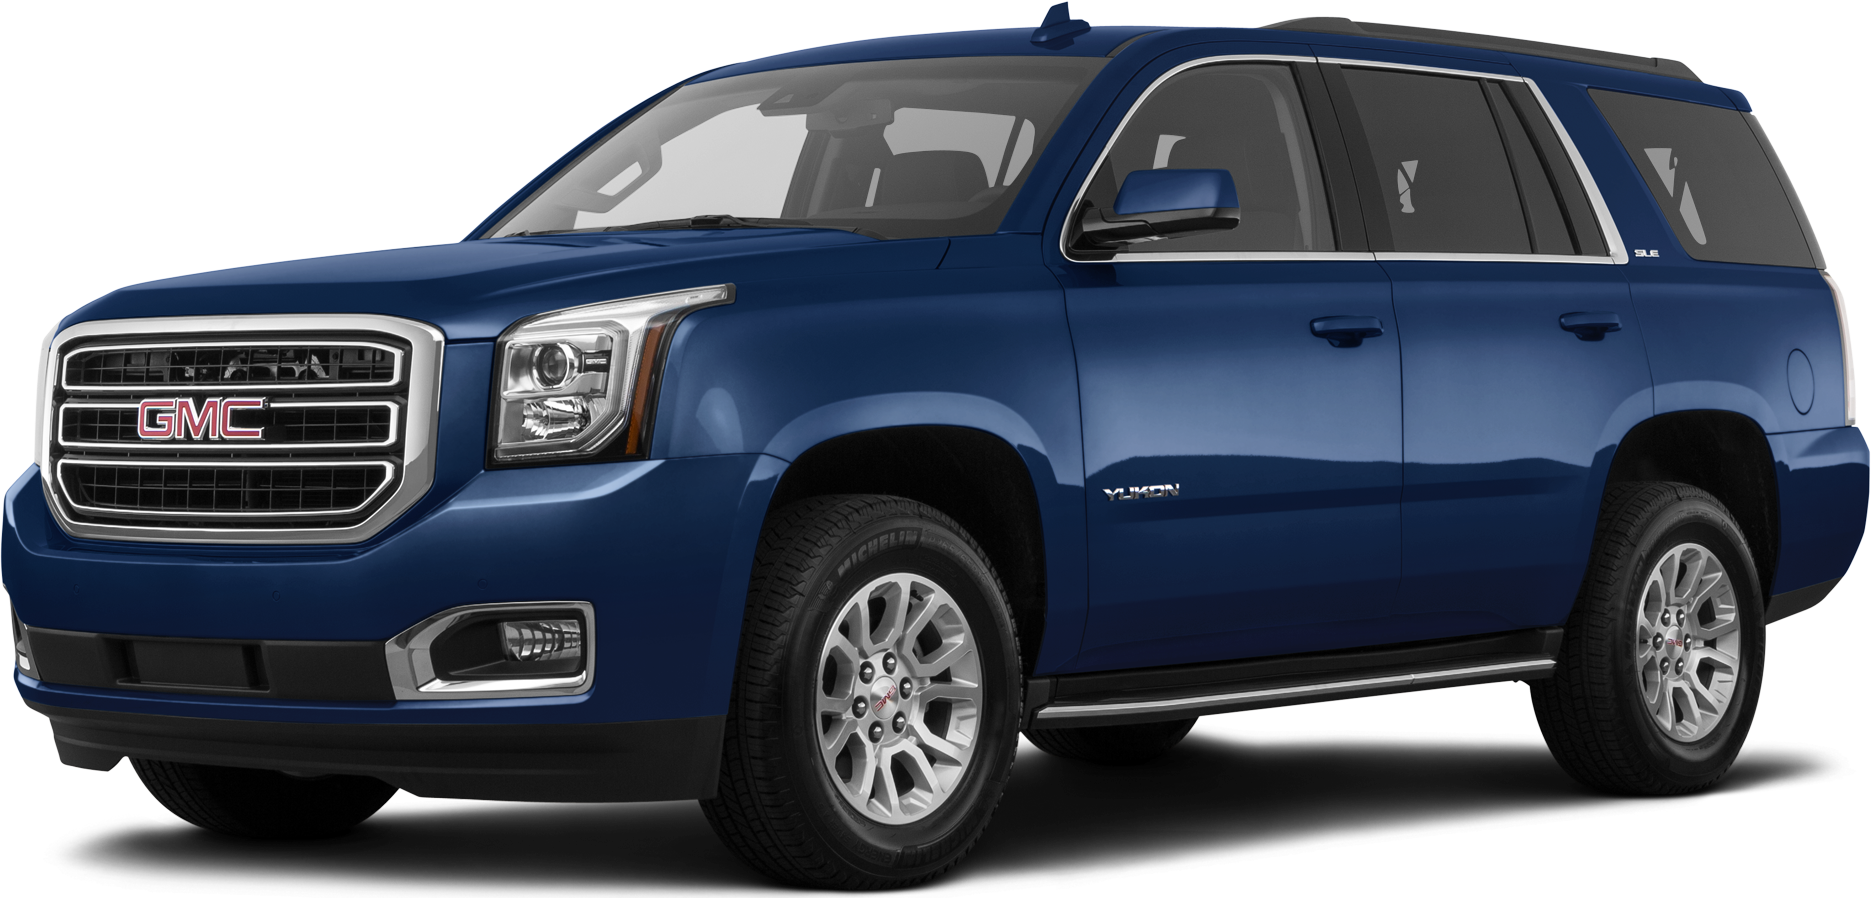 2018 Gmc Yukon Values Cars For Sale Kelley Blue Book